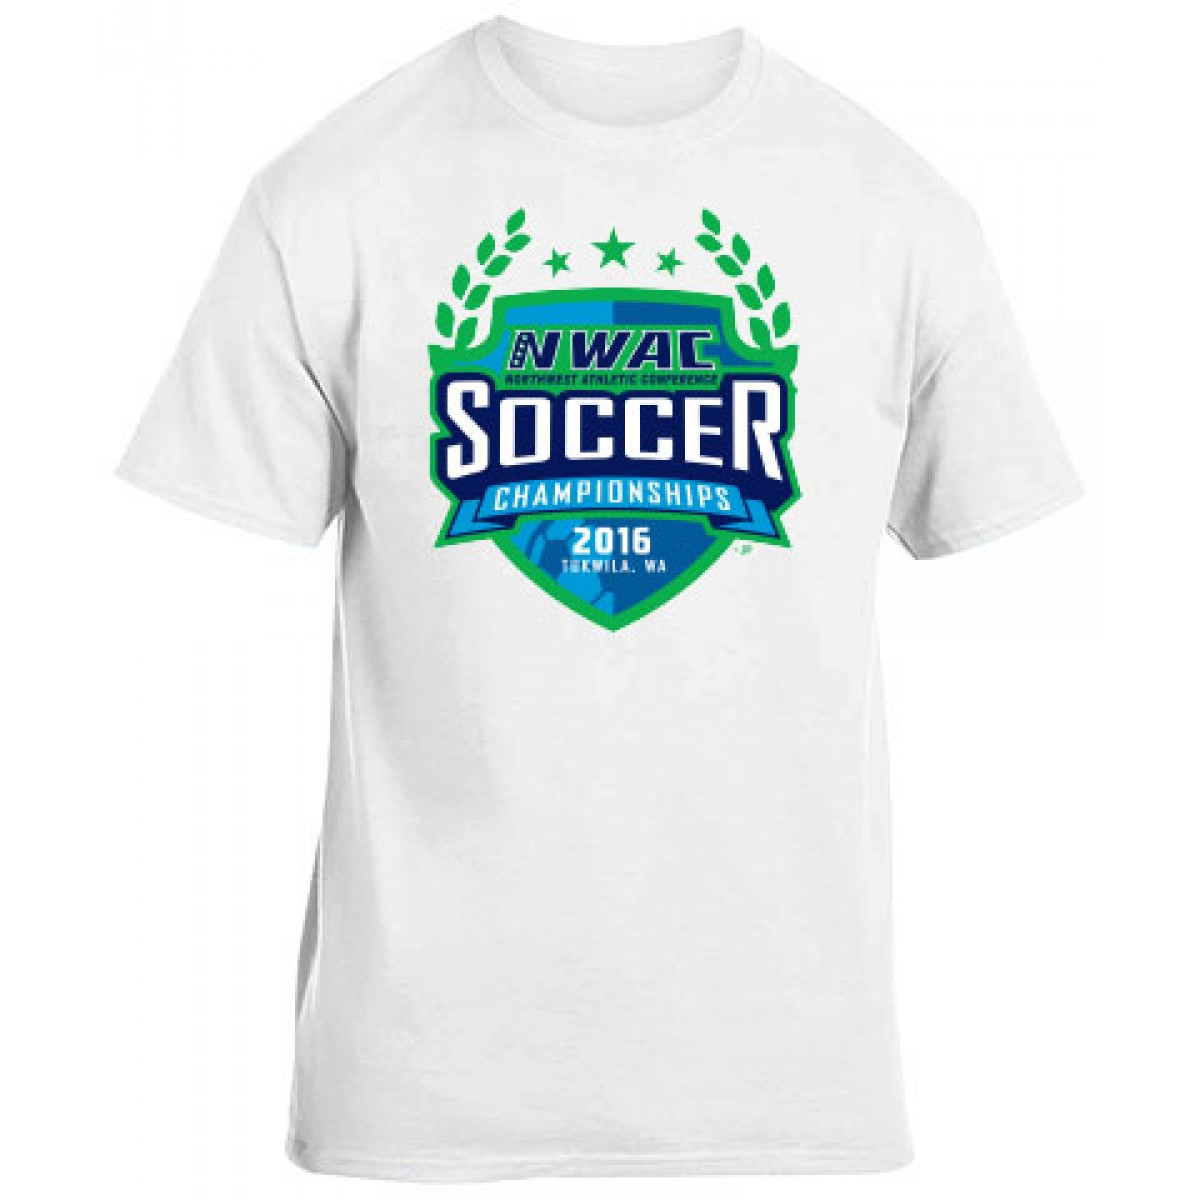 2016 NWAC Soccer Championships Special Item-White-2XL